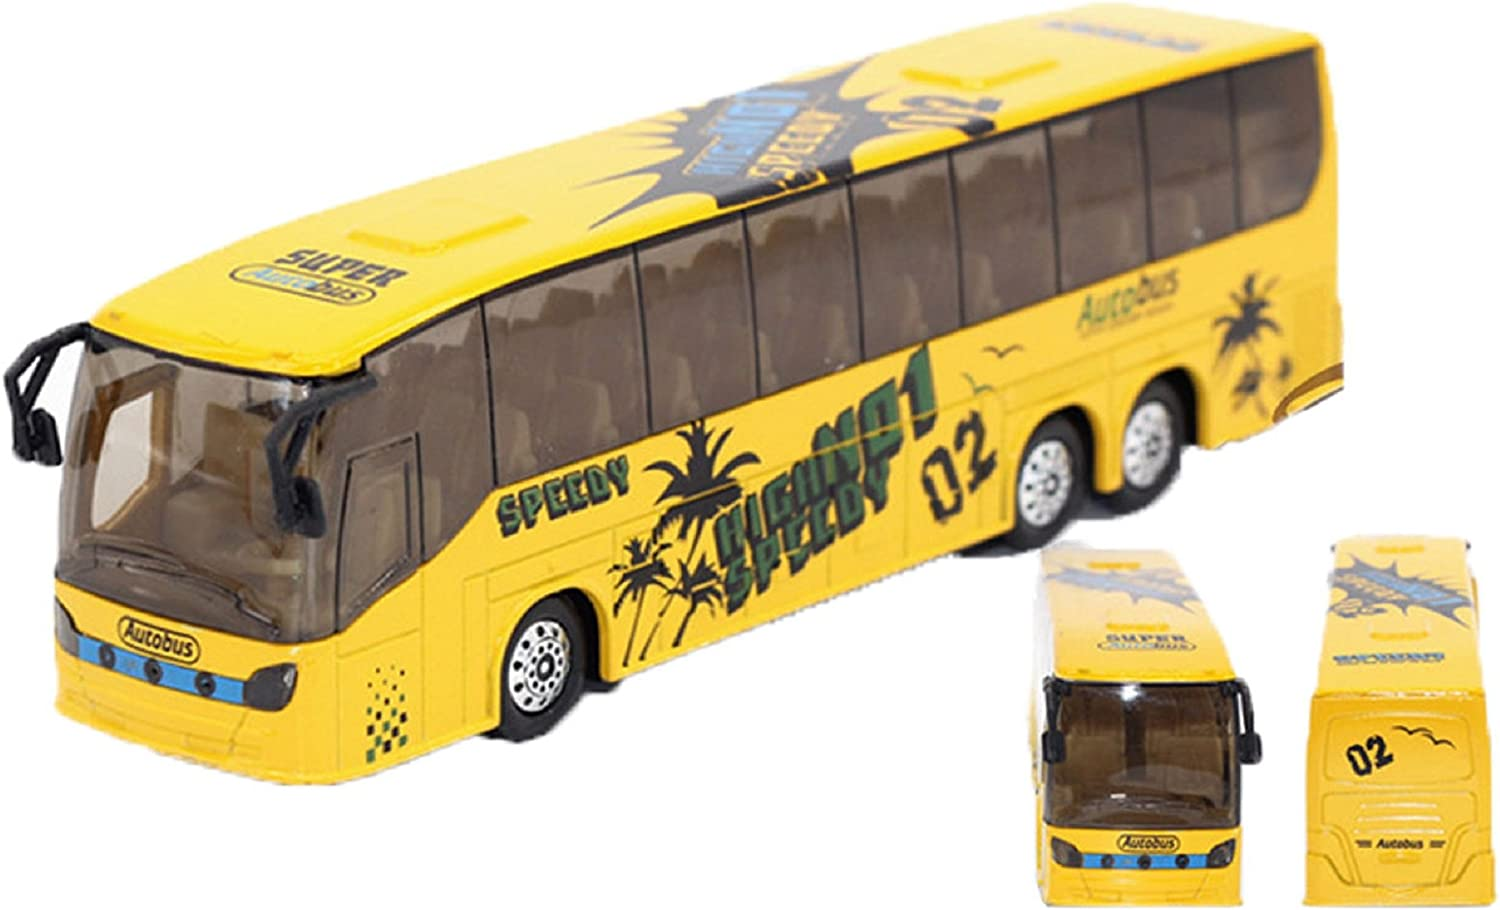 Teamsterz City Coach Bus Toy model Vehicle Ride a City coach 1:50 Scale UK Stock